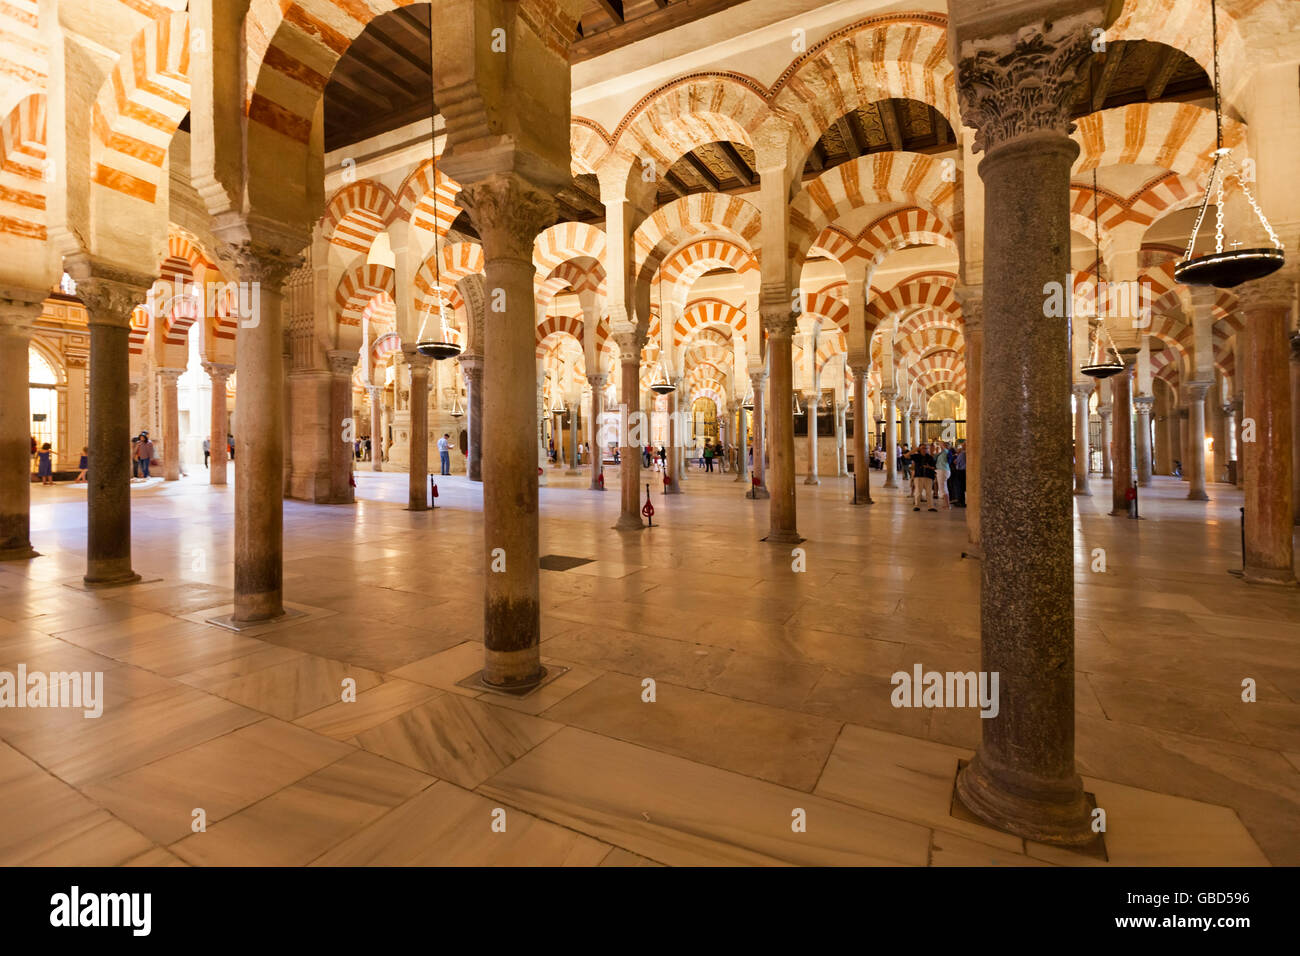 Great hall of the Mosque-Cathedral of Córdoba, Spain - Stock Image